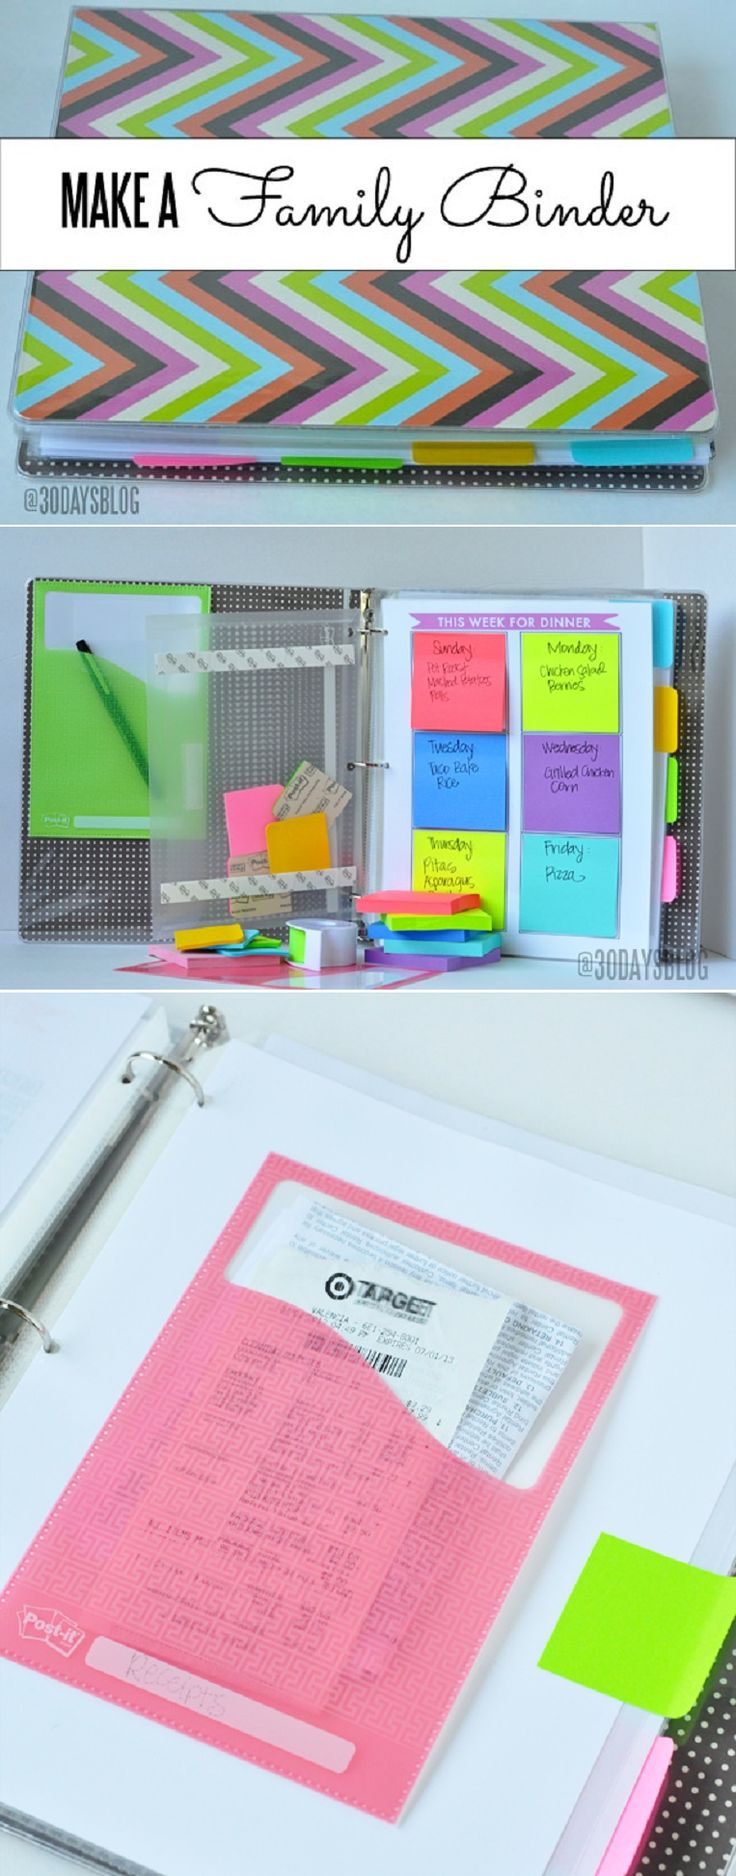 Family Binder - 12 DIY Binder Organization Projects | Keep the whole family organized with these ideas. | www.thirtyhadmadedays.com